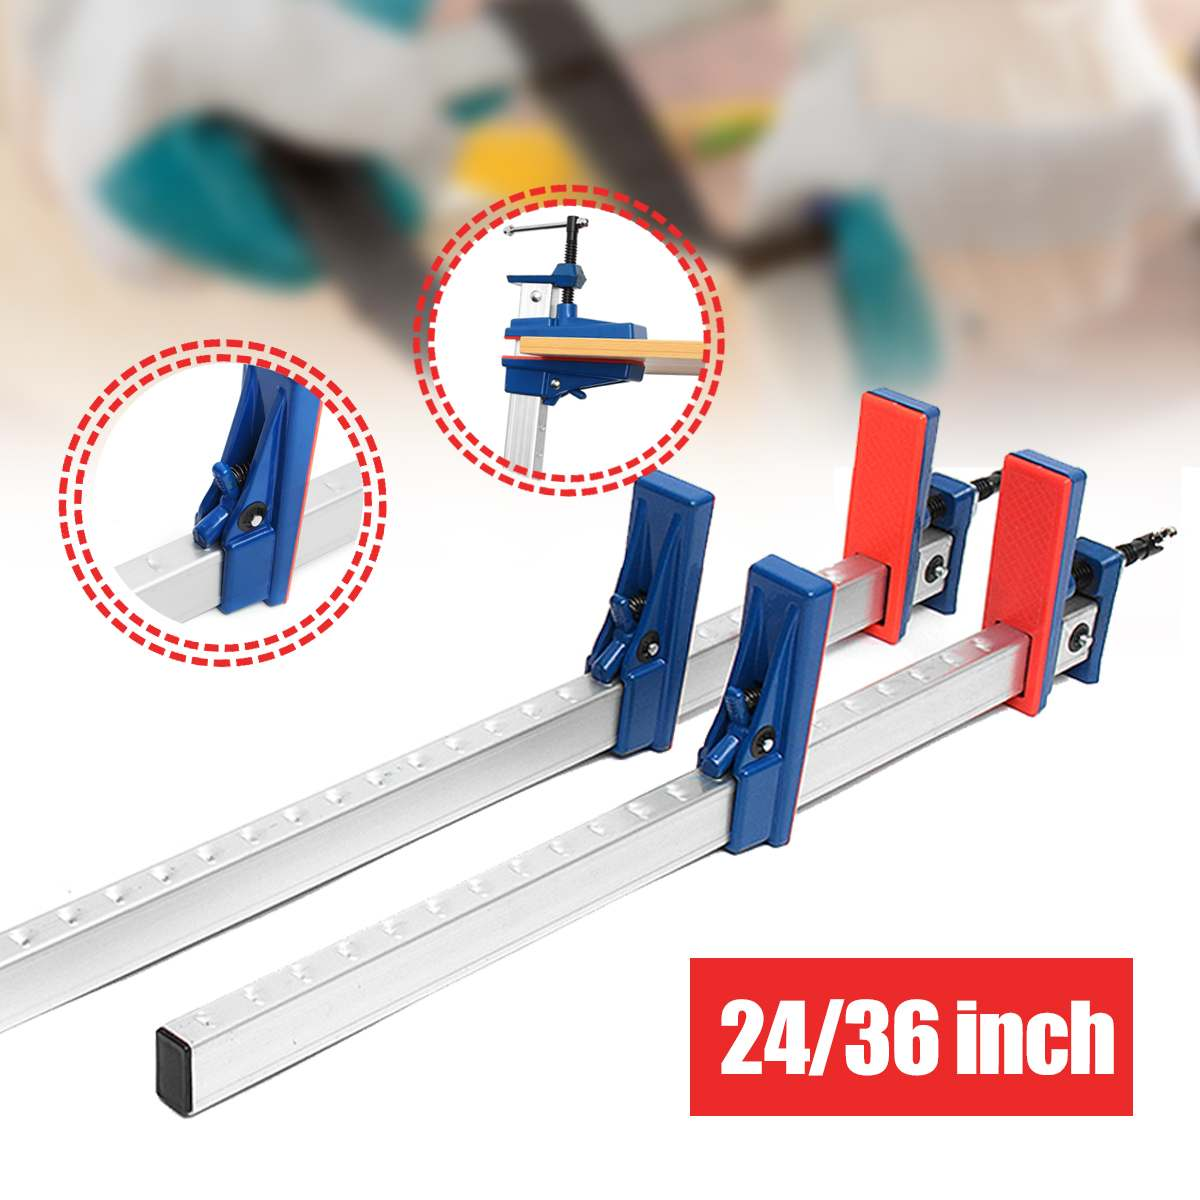 24/36 Inch F Type Clamp Bar Heavy   Holder Grip Release Parallel Wood Clamps Hand DIY T Bar Wood Clamps for Woodworking